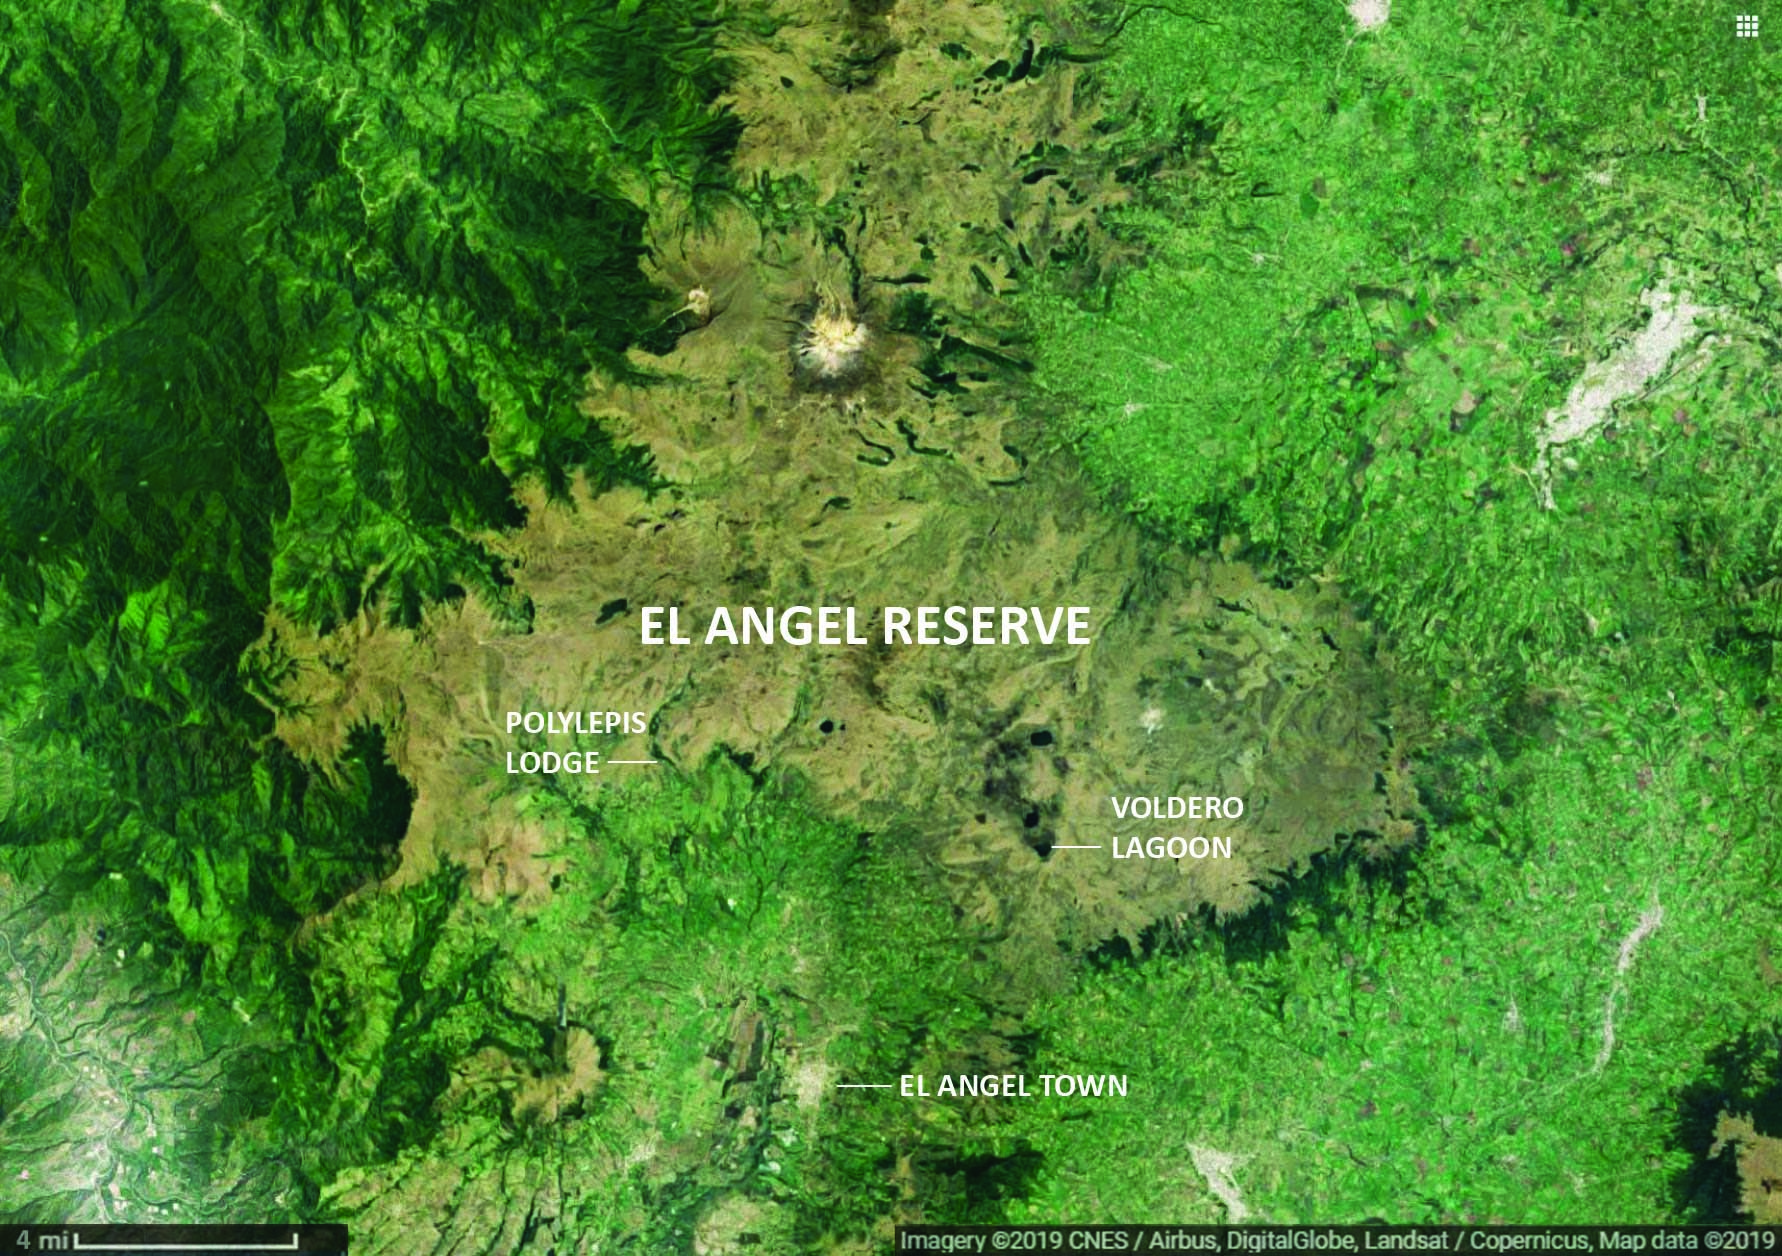 Satellite view of El Angel Ecological Reserve, Ecuador